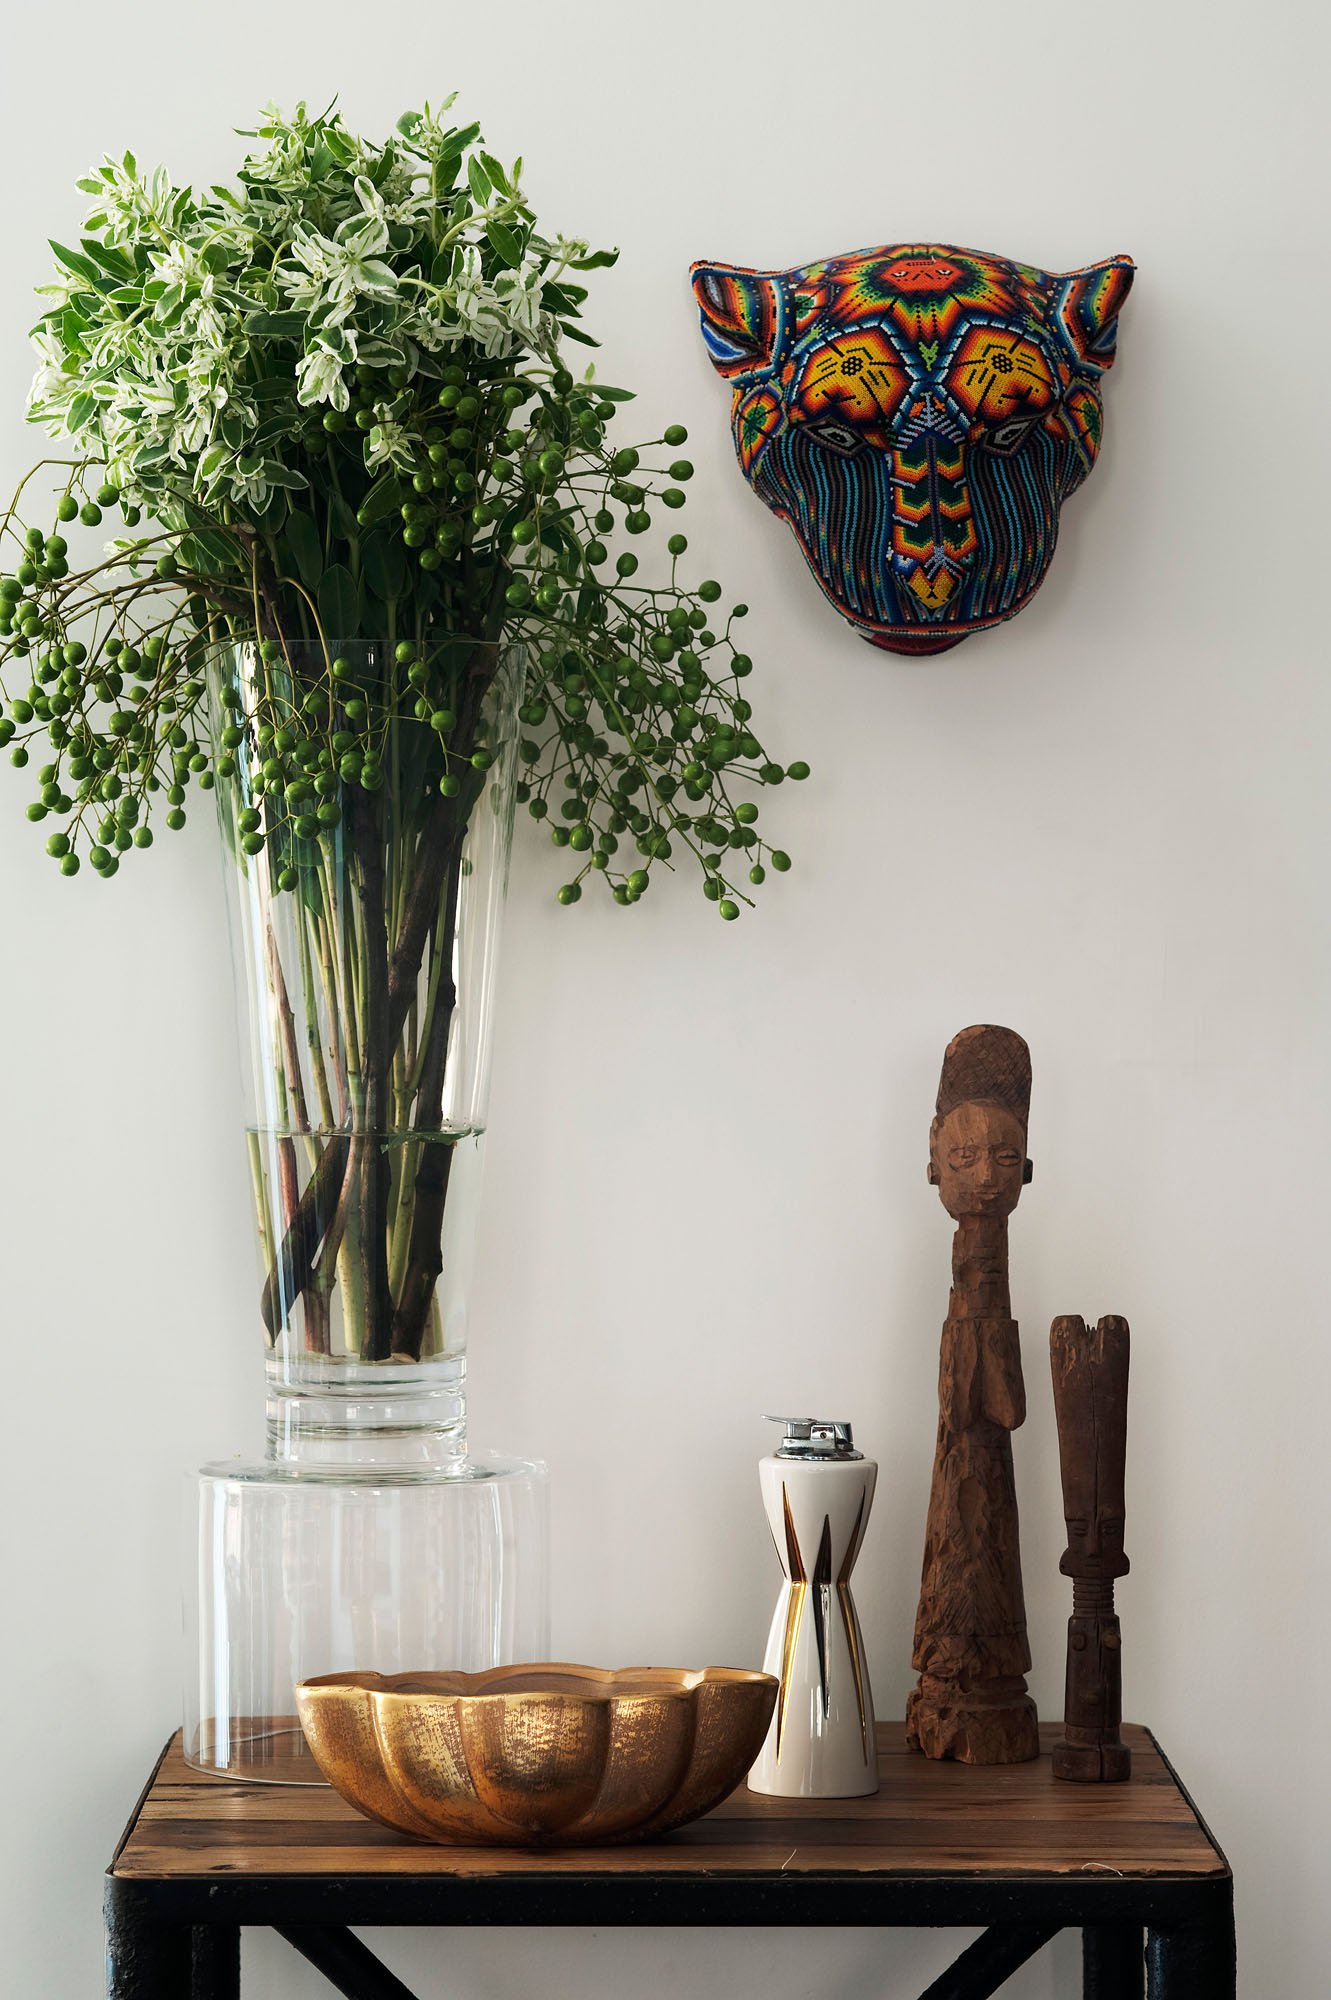 Flowers in Vase Near Artistic Wooden Ornament and Colorful Kitten Mask